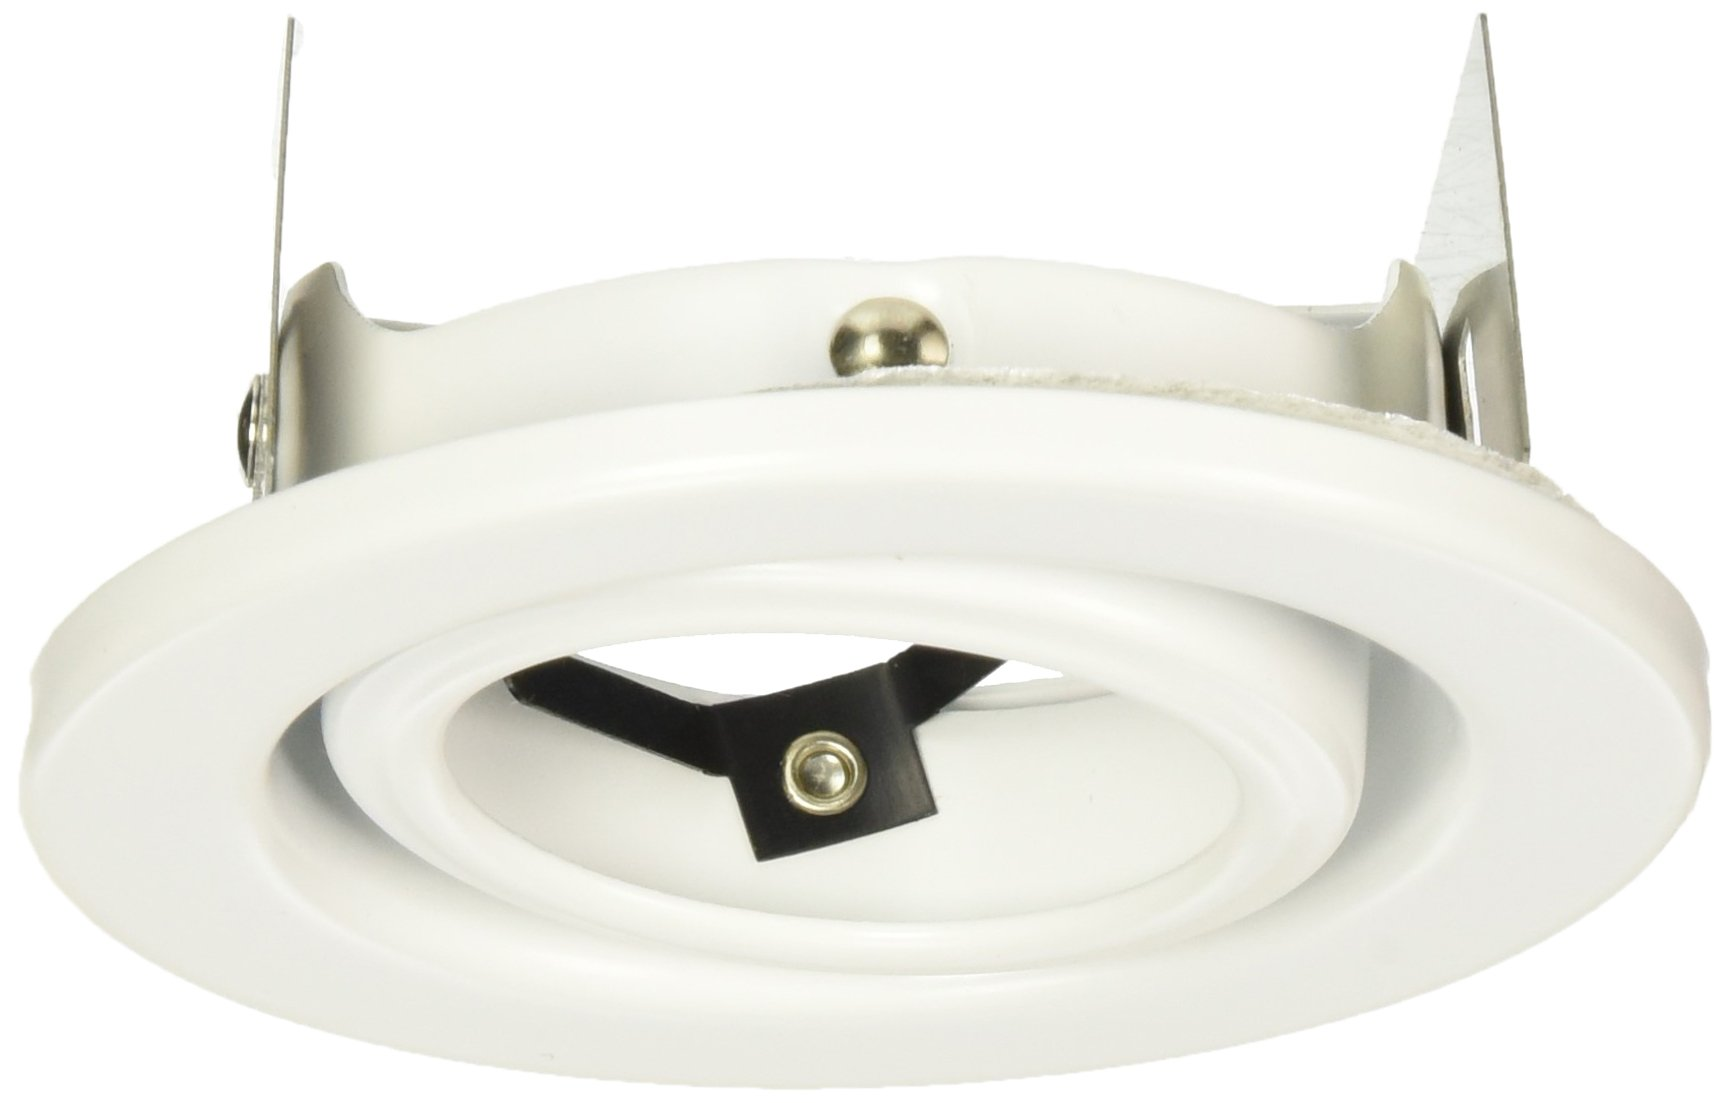 WAC Lighting HR-837-WT Recessed Low Voltage Trim Mini Round Adjustment